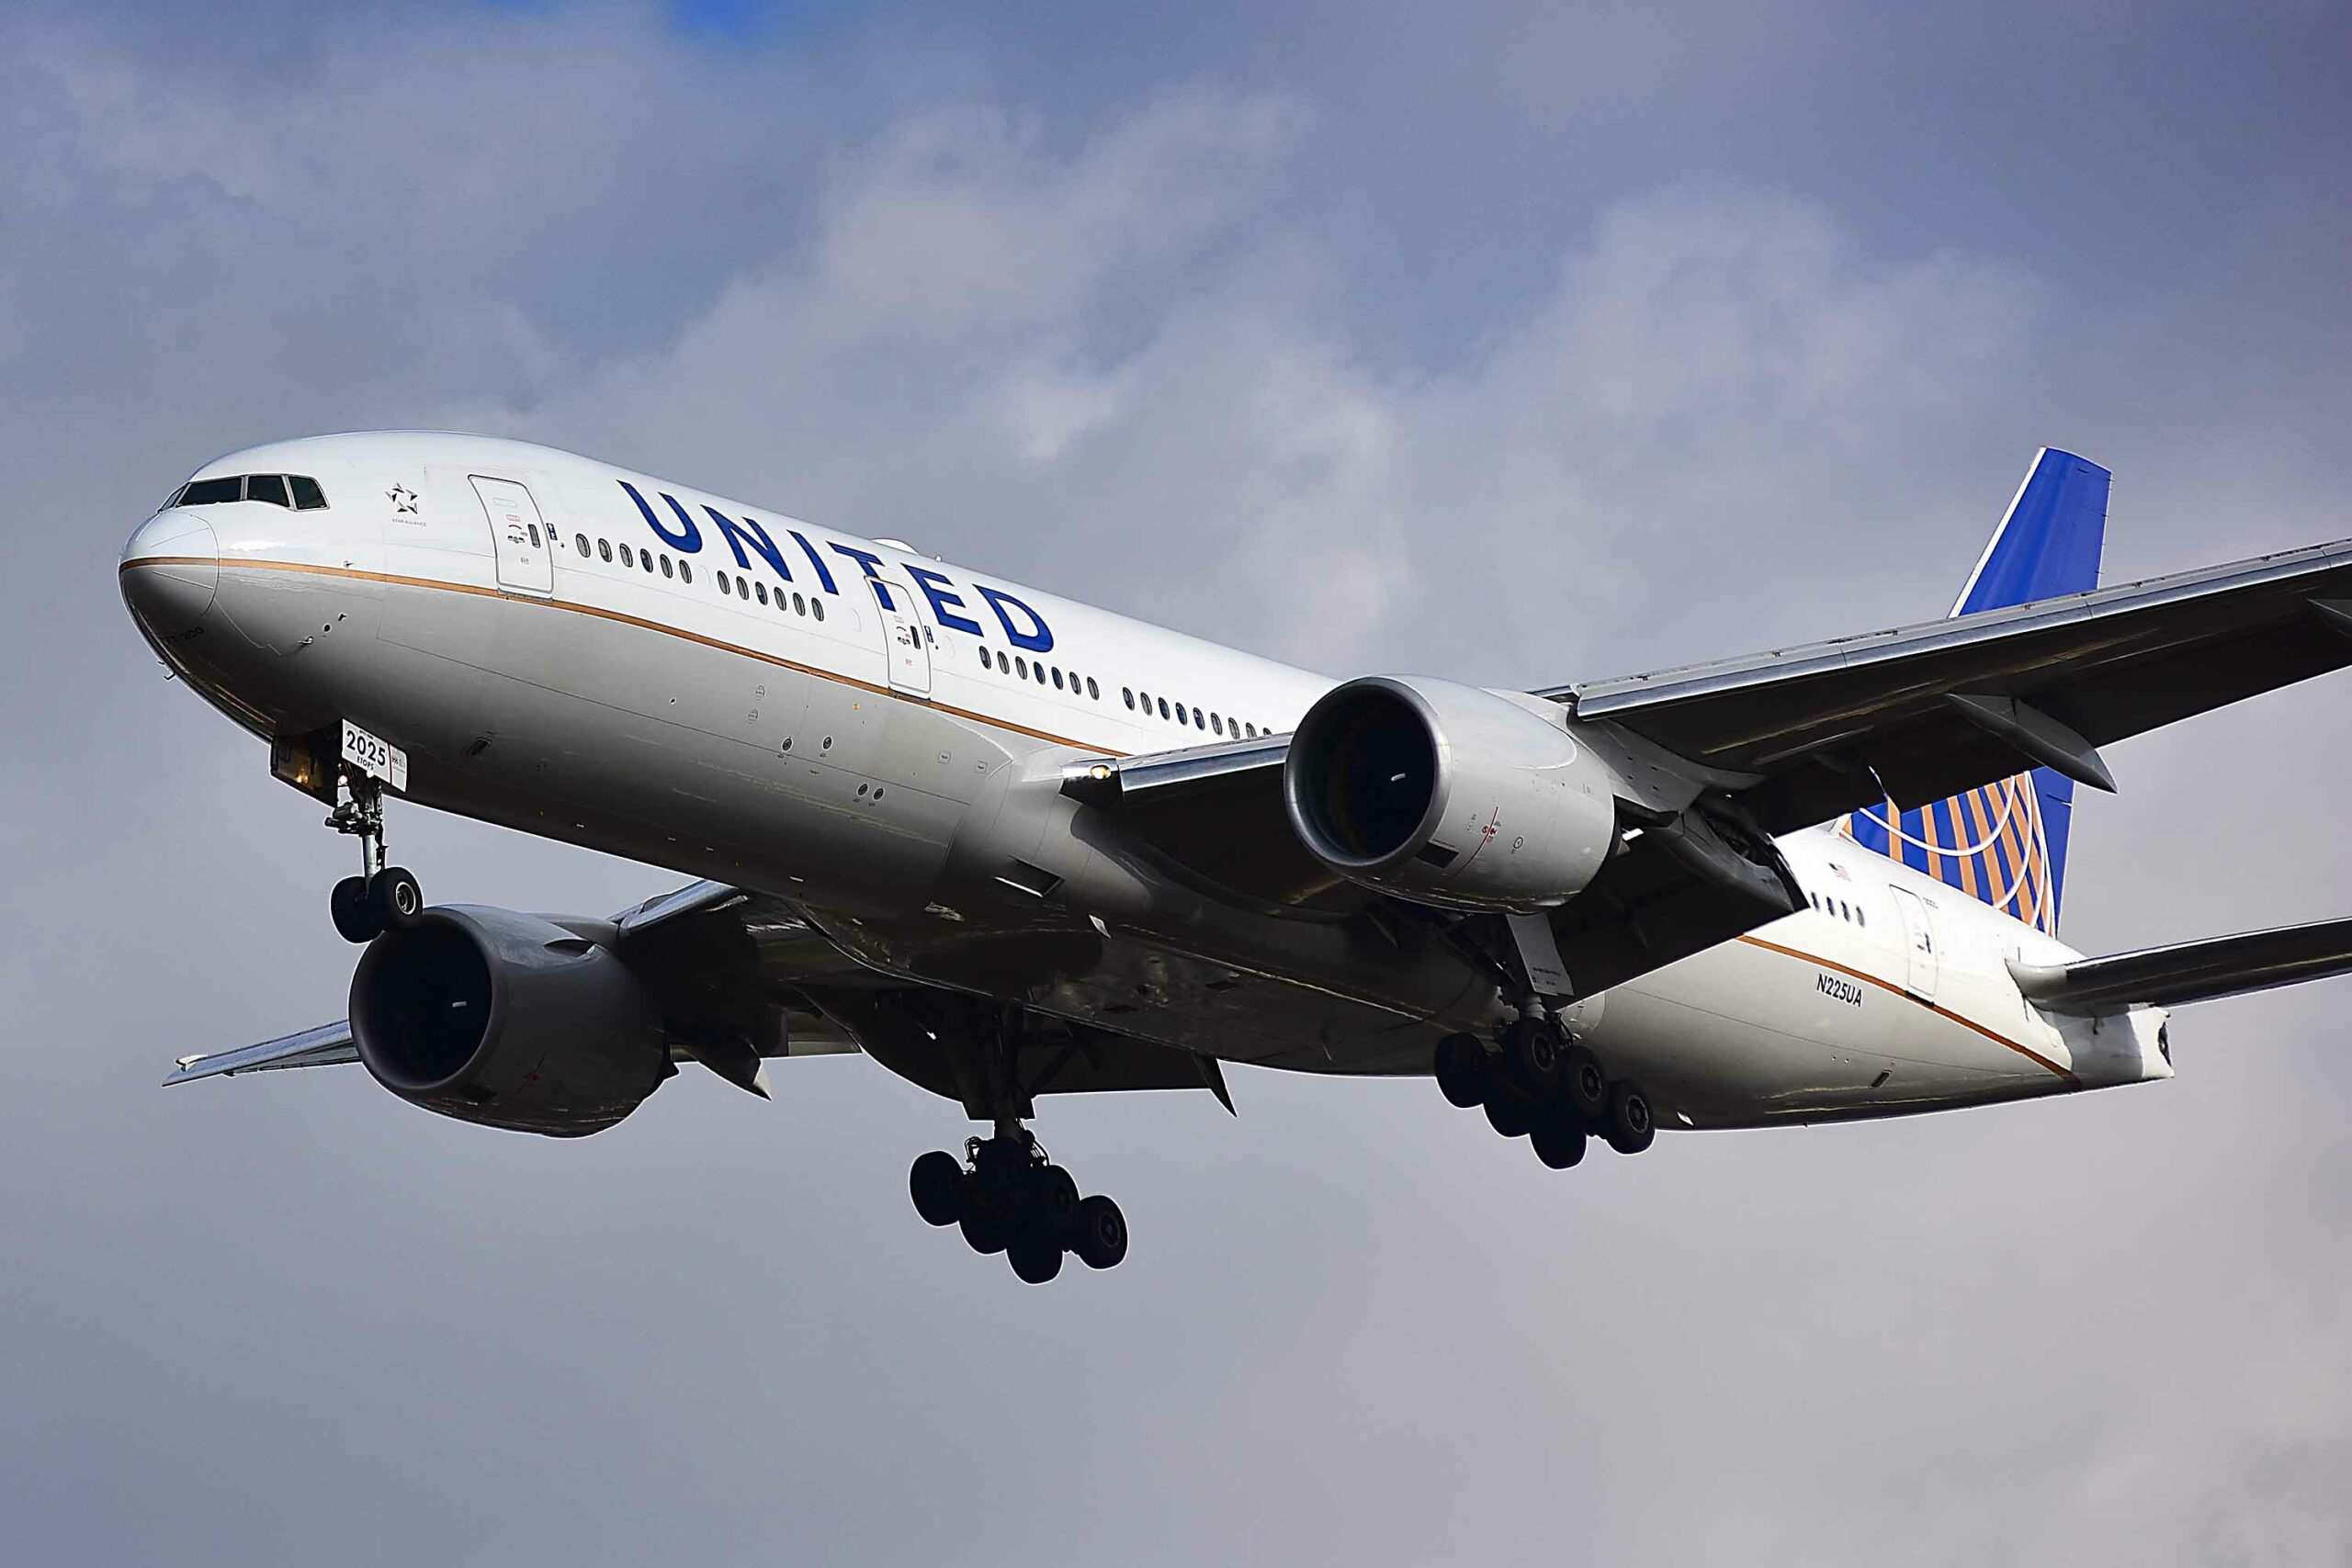 United Cargo has operated 11,000 cargo-only flights in one year Atlas logistic network